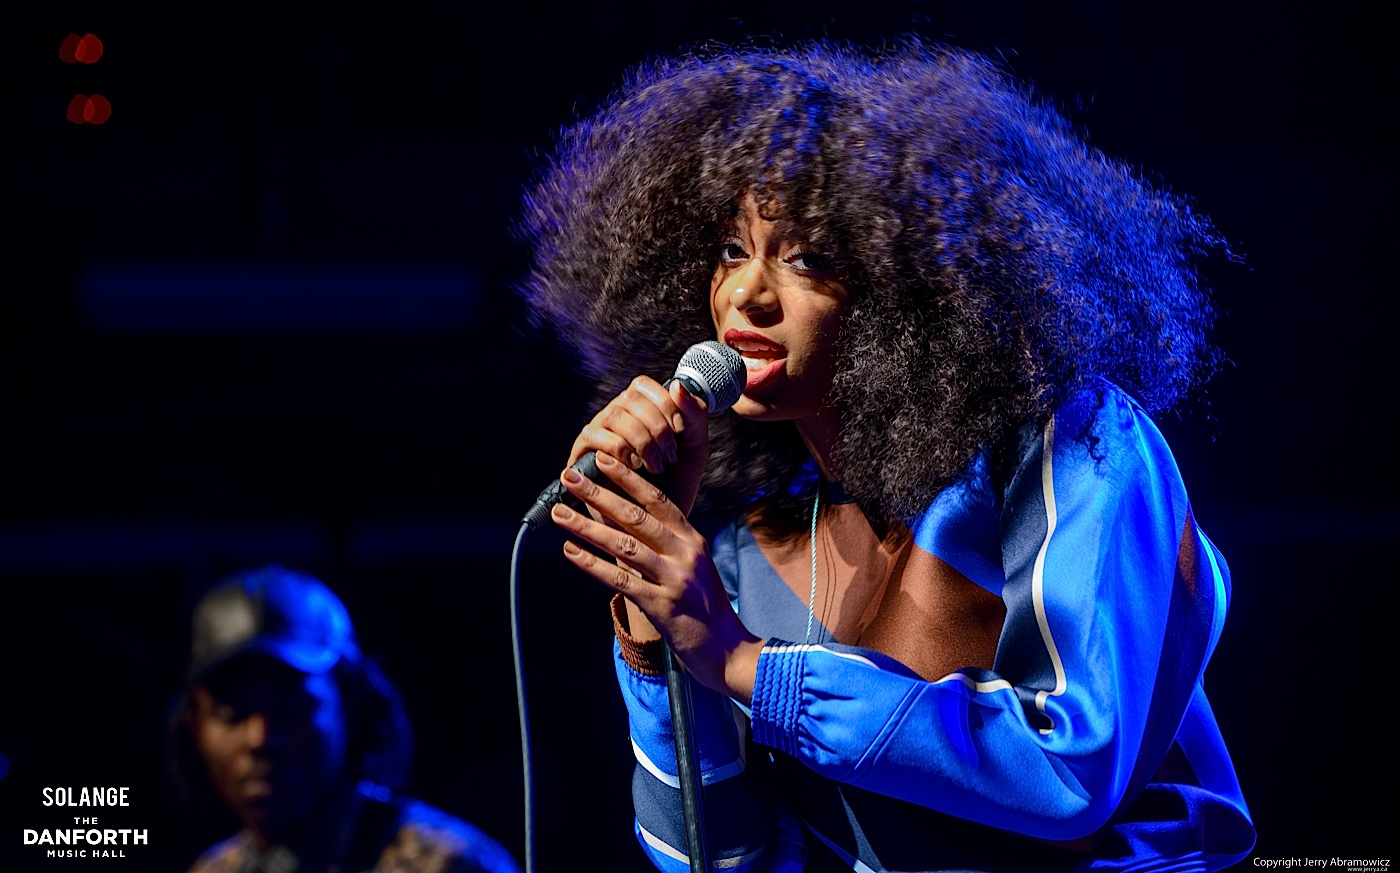 Solange plays to a packed house at The Danforth Music Hall